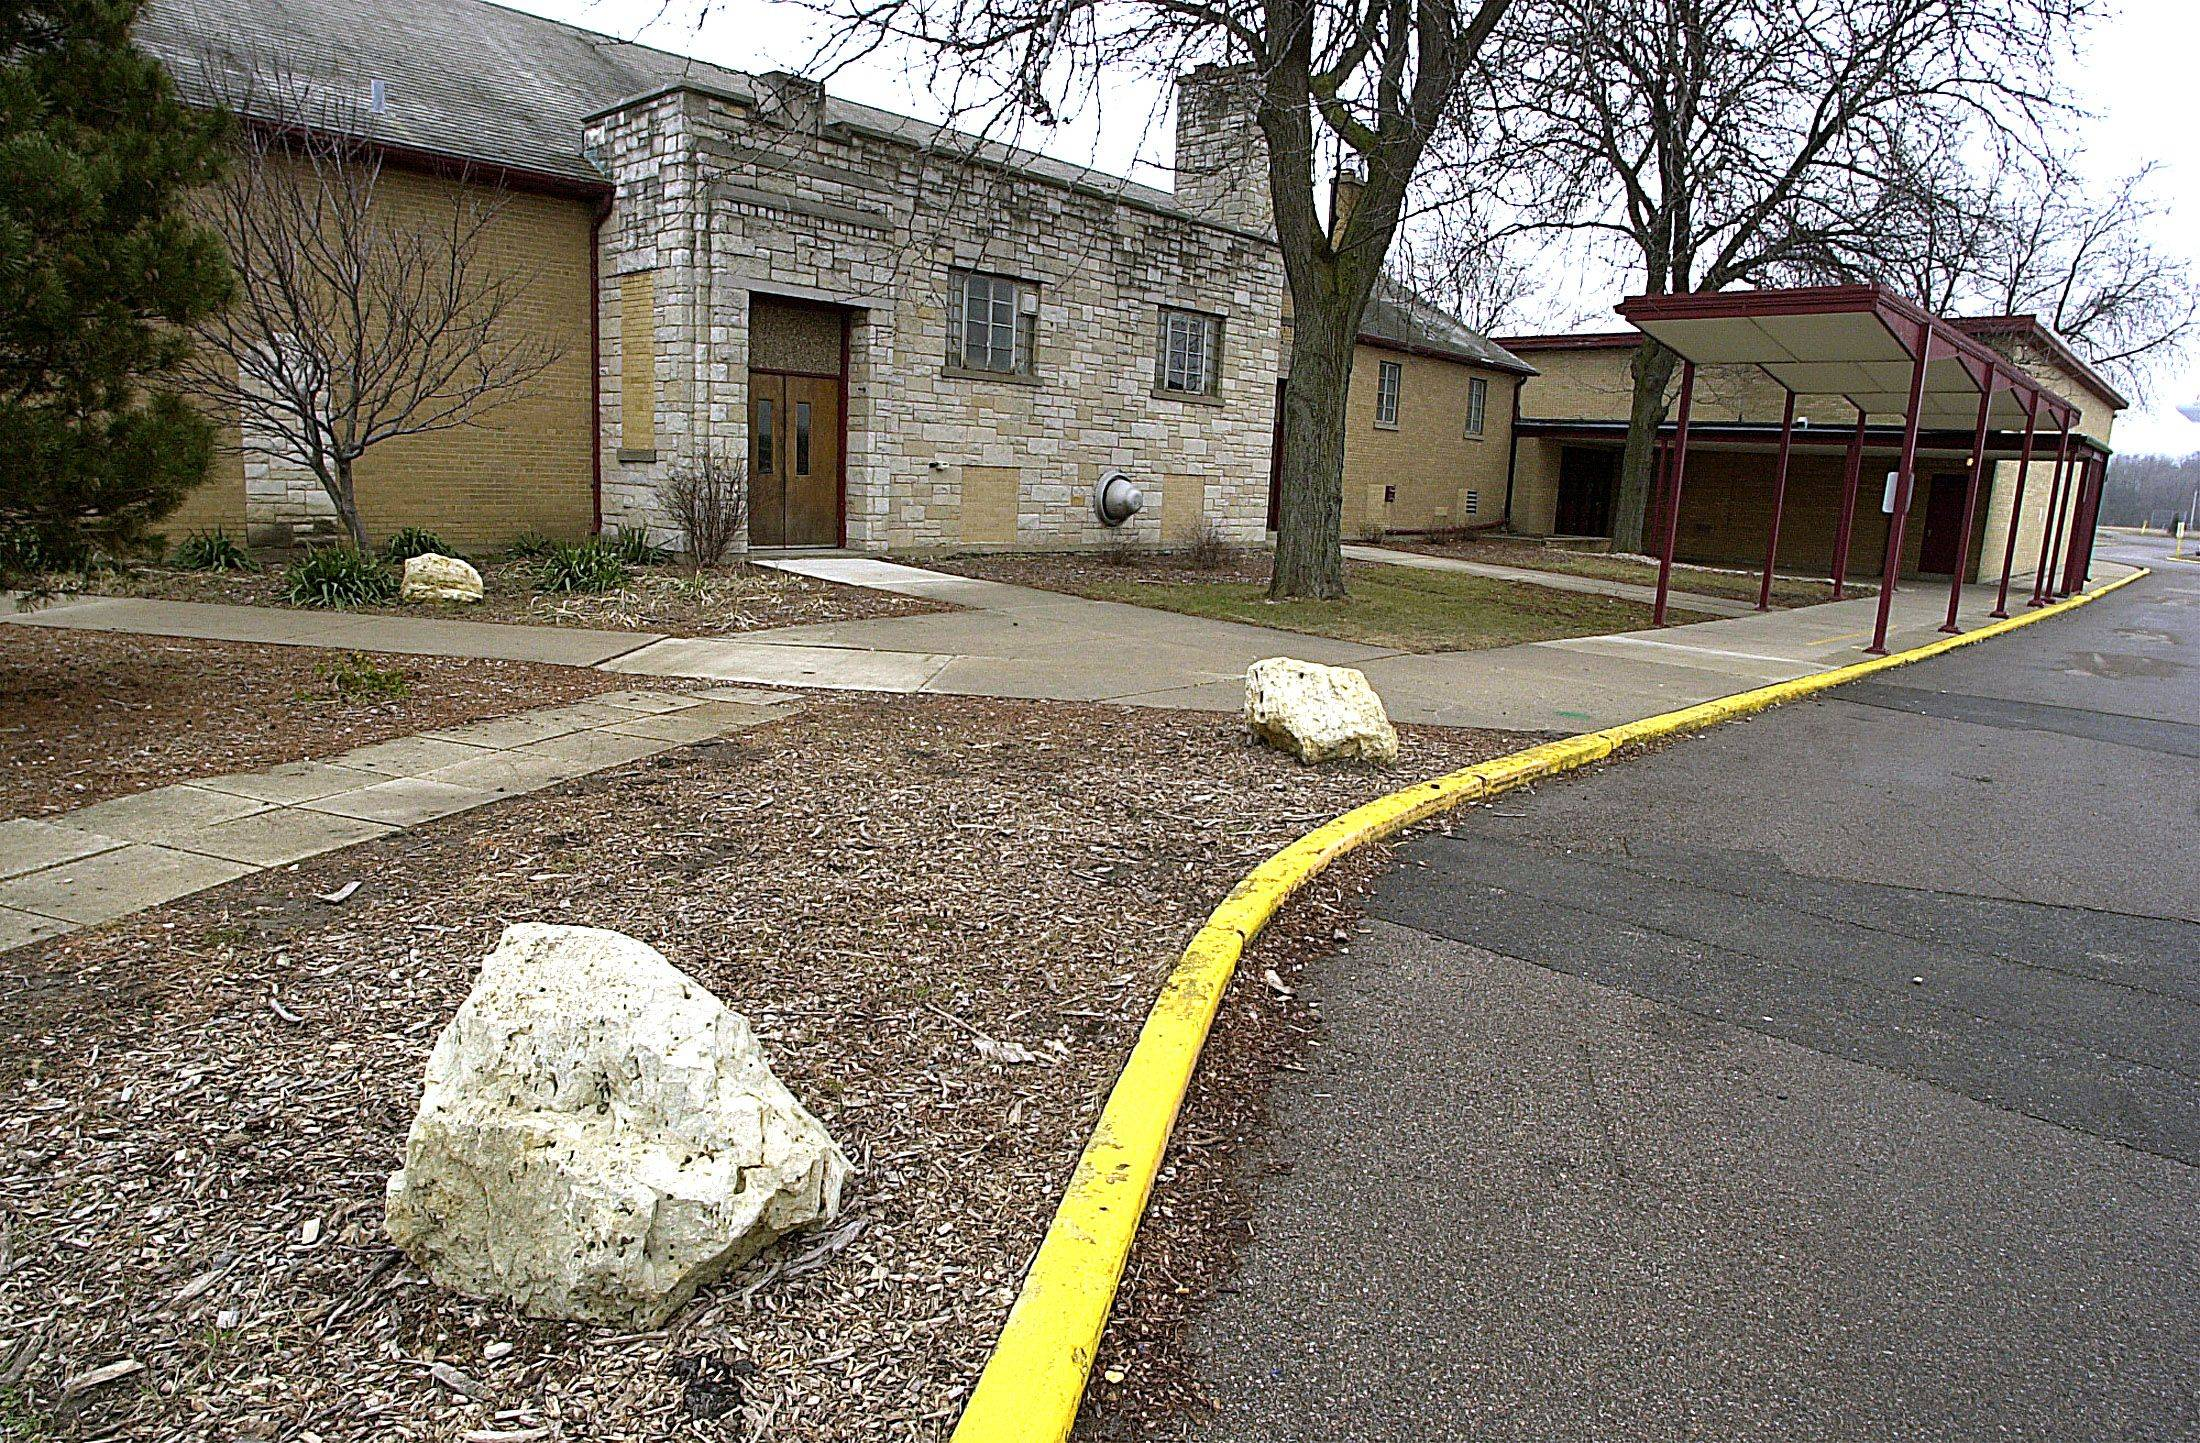 Big Hollow Elementary District 38 plans to knock down the old primary school building at routes 12 and Route 12. The former Taveirne Middle School also will be demolished, officials said.